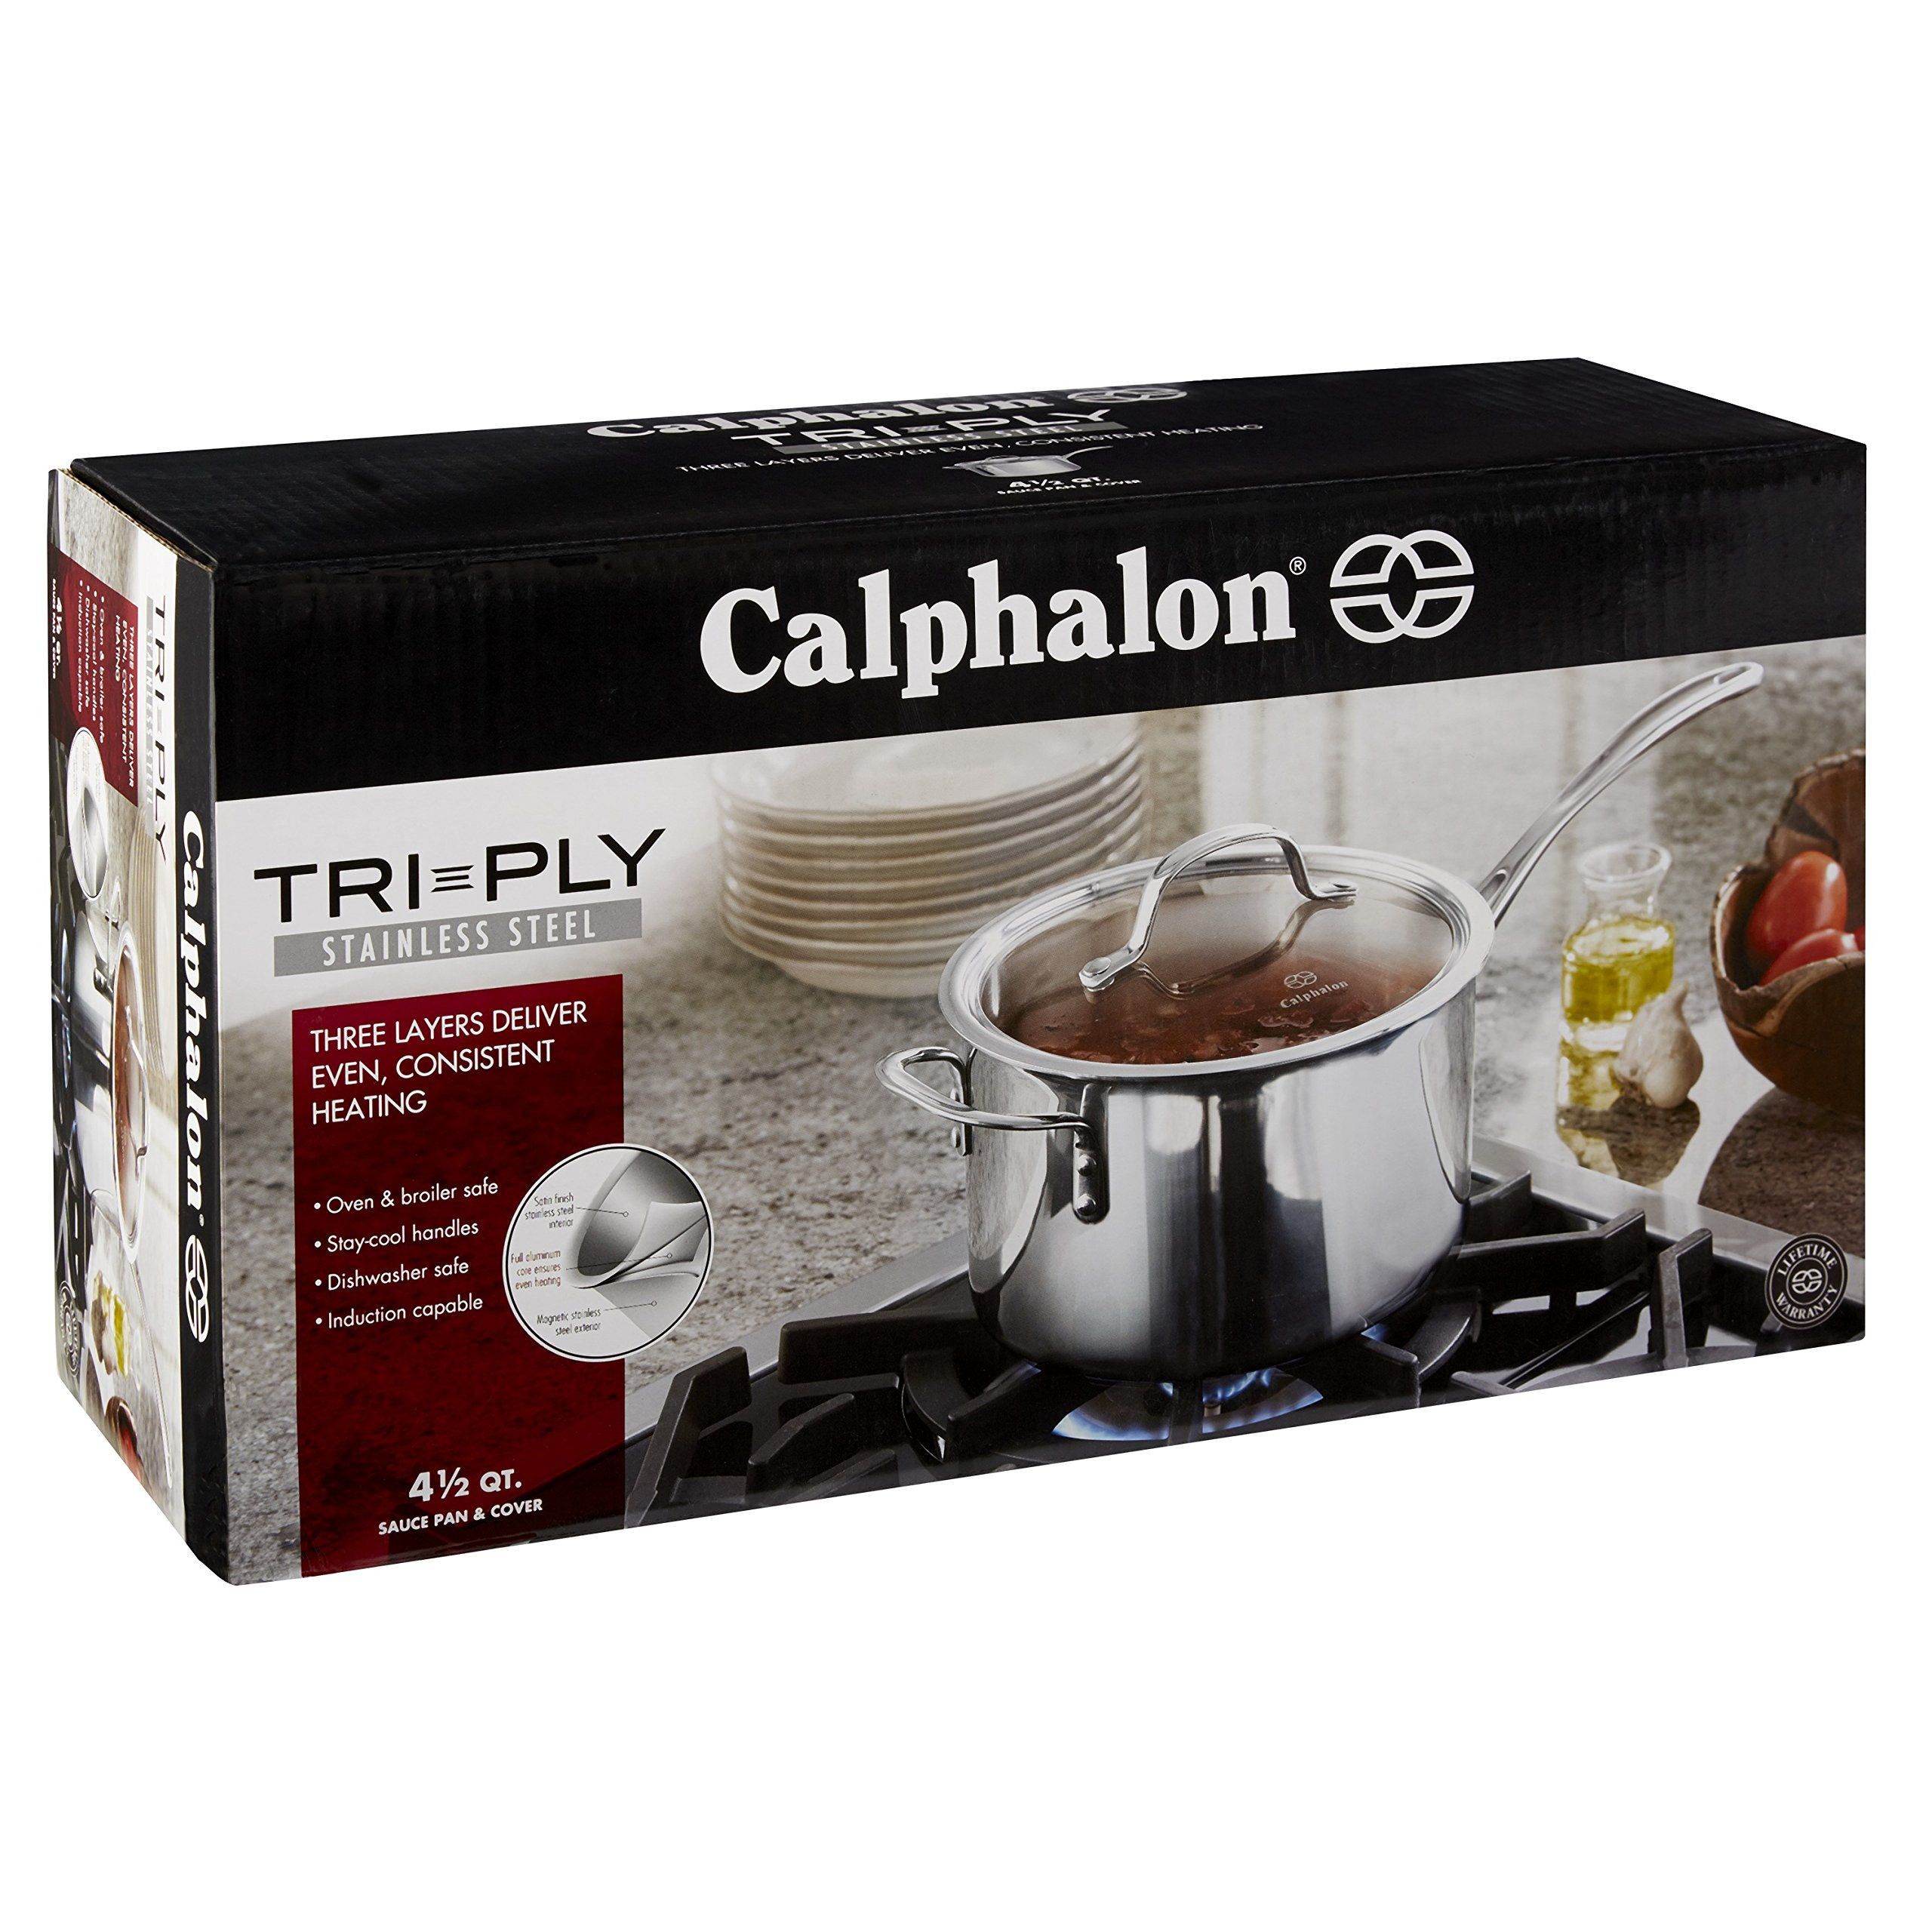 Calphalon Tri-Ply Stainless Steel 4-1/2-Quart Sauce Pan with Cover by Calphalon (Image #6)